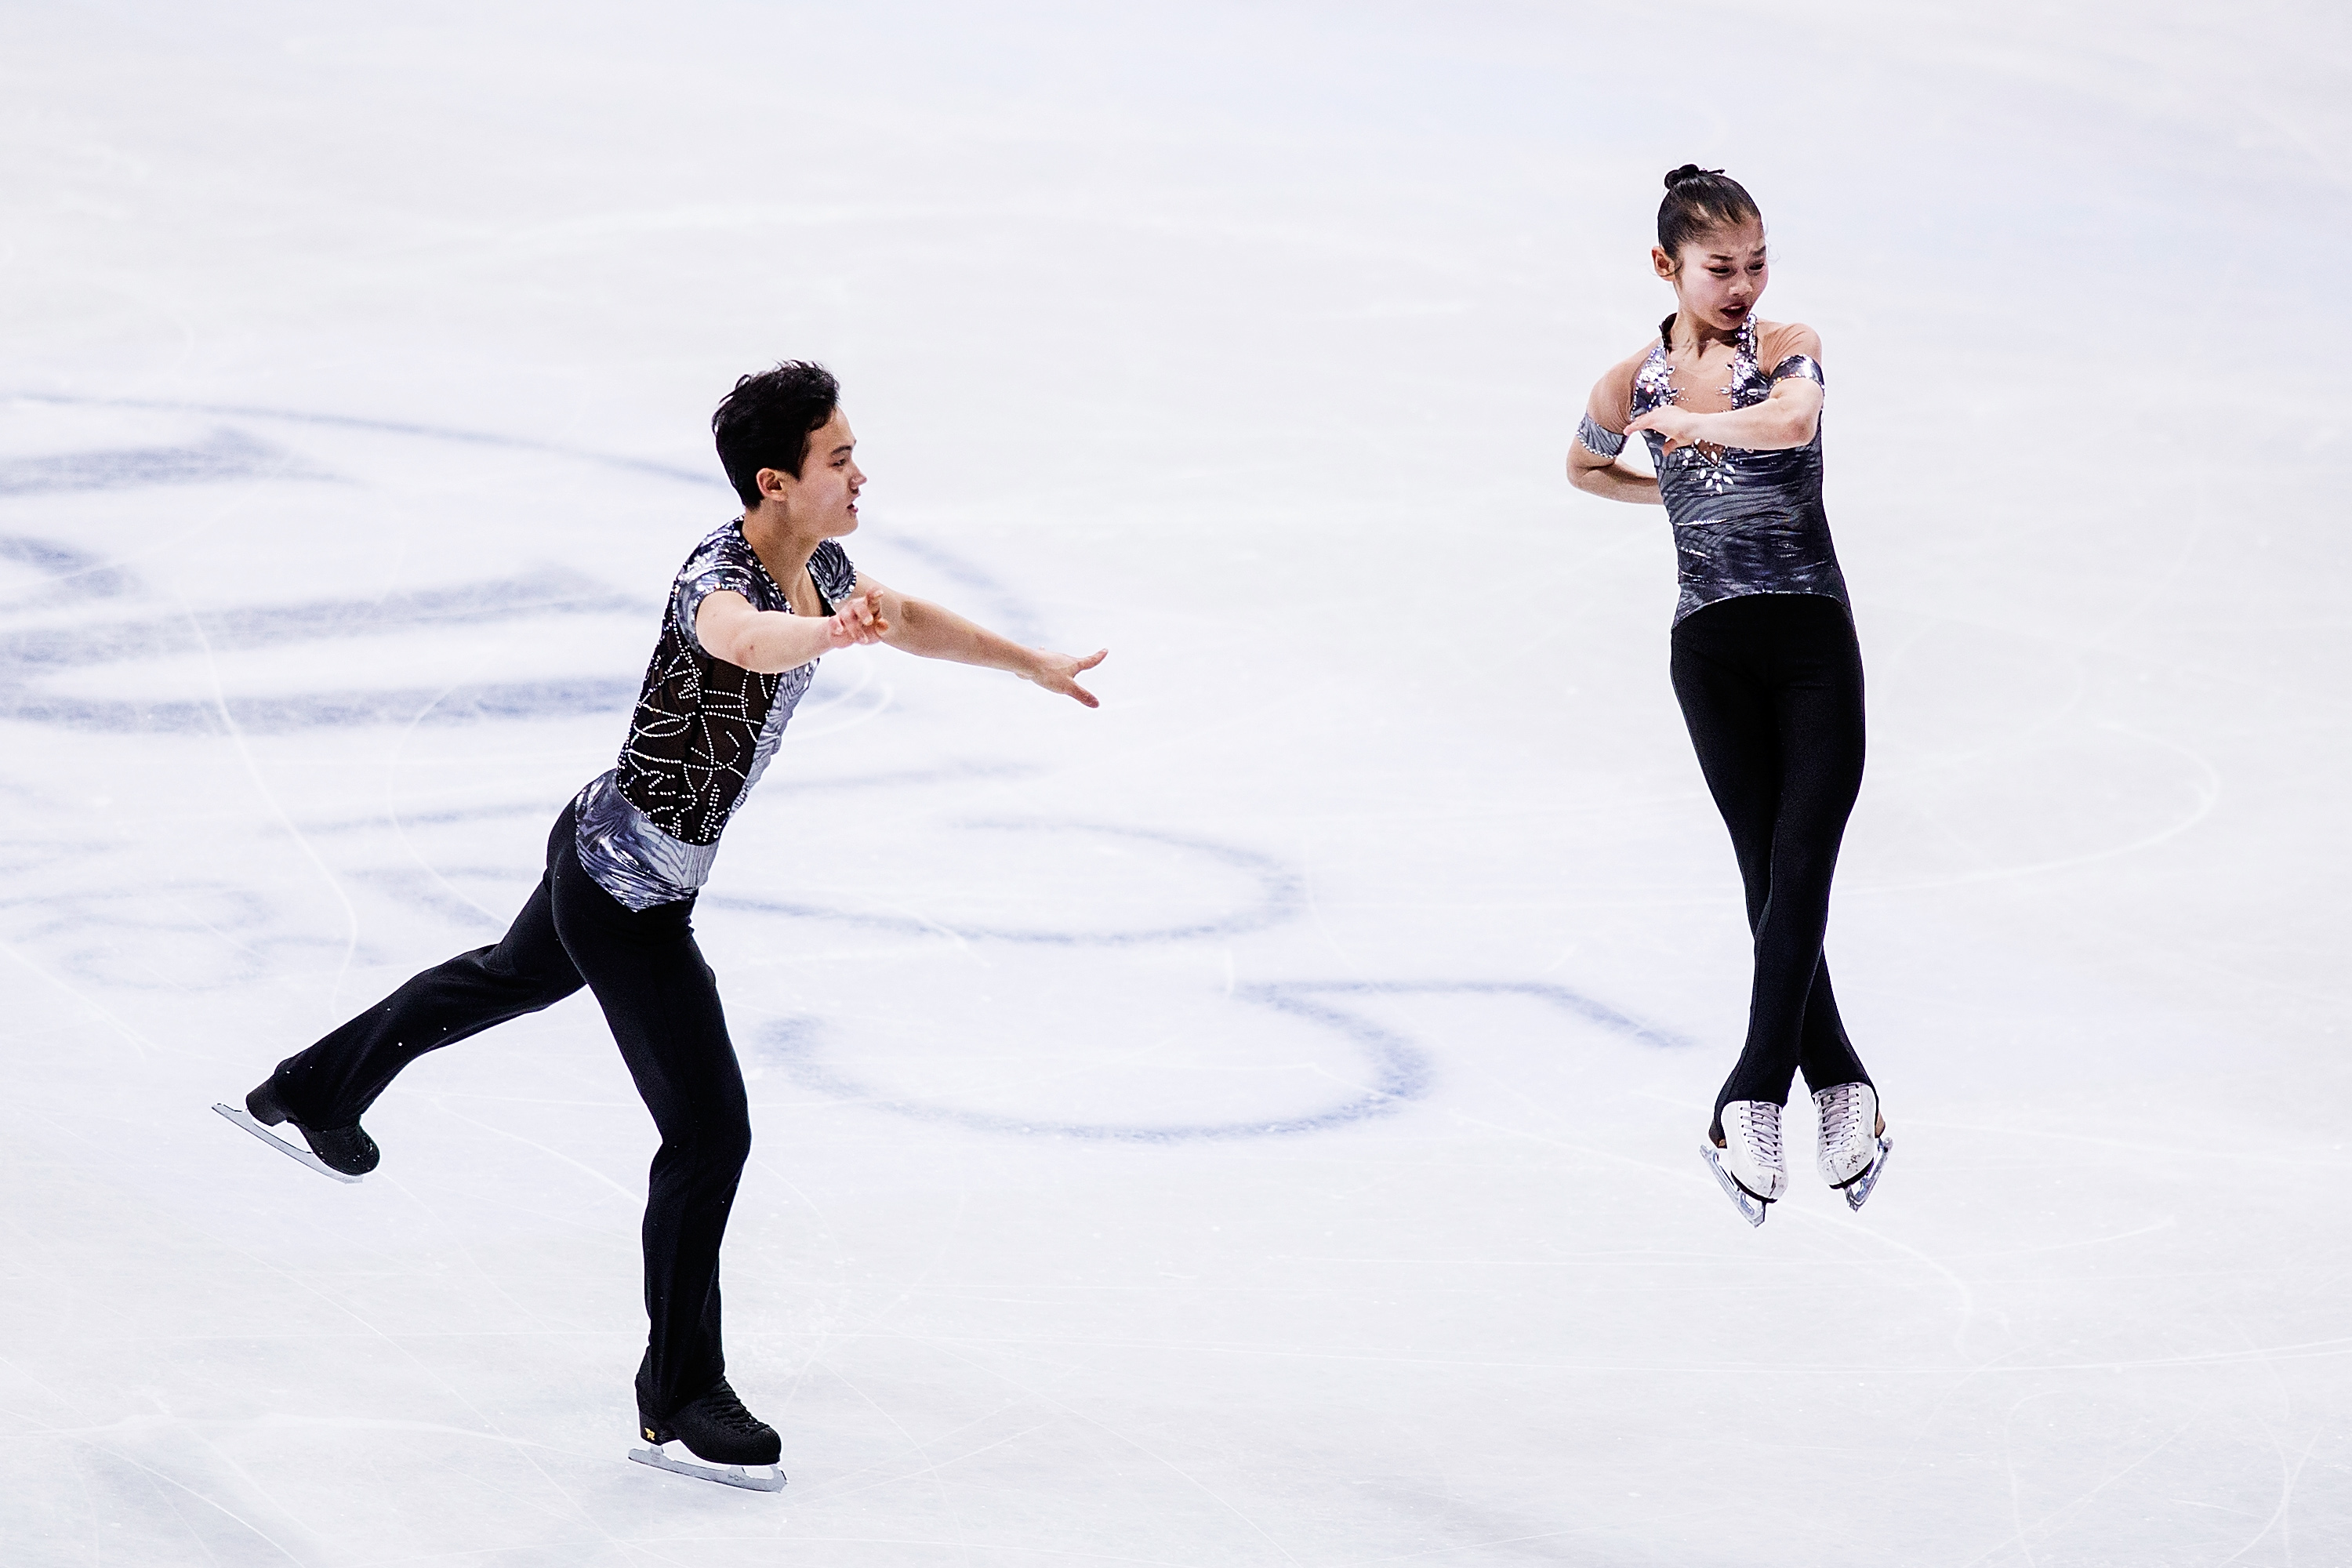 Tae Ok Ryom and Ju Sik Kim of North Korea compete in the Pairs Short Program during day one of the World Figure Skating Championships at Hartwall Arena on March 29, 2017 in Helsinki, Finland.